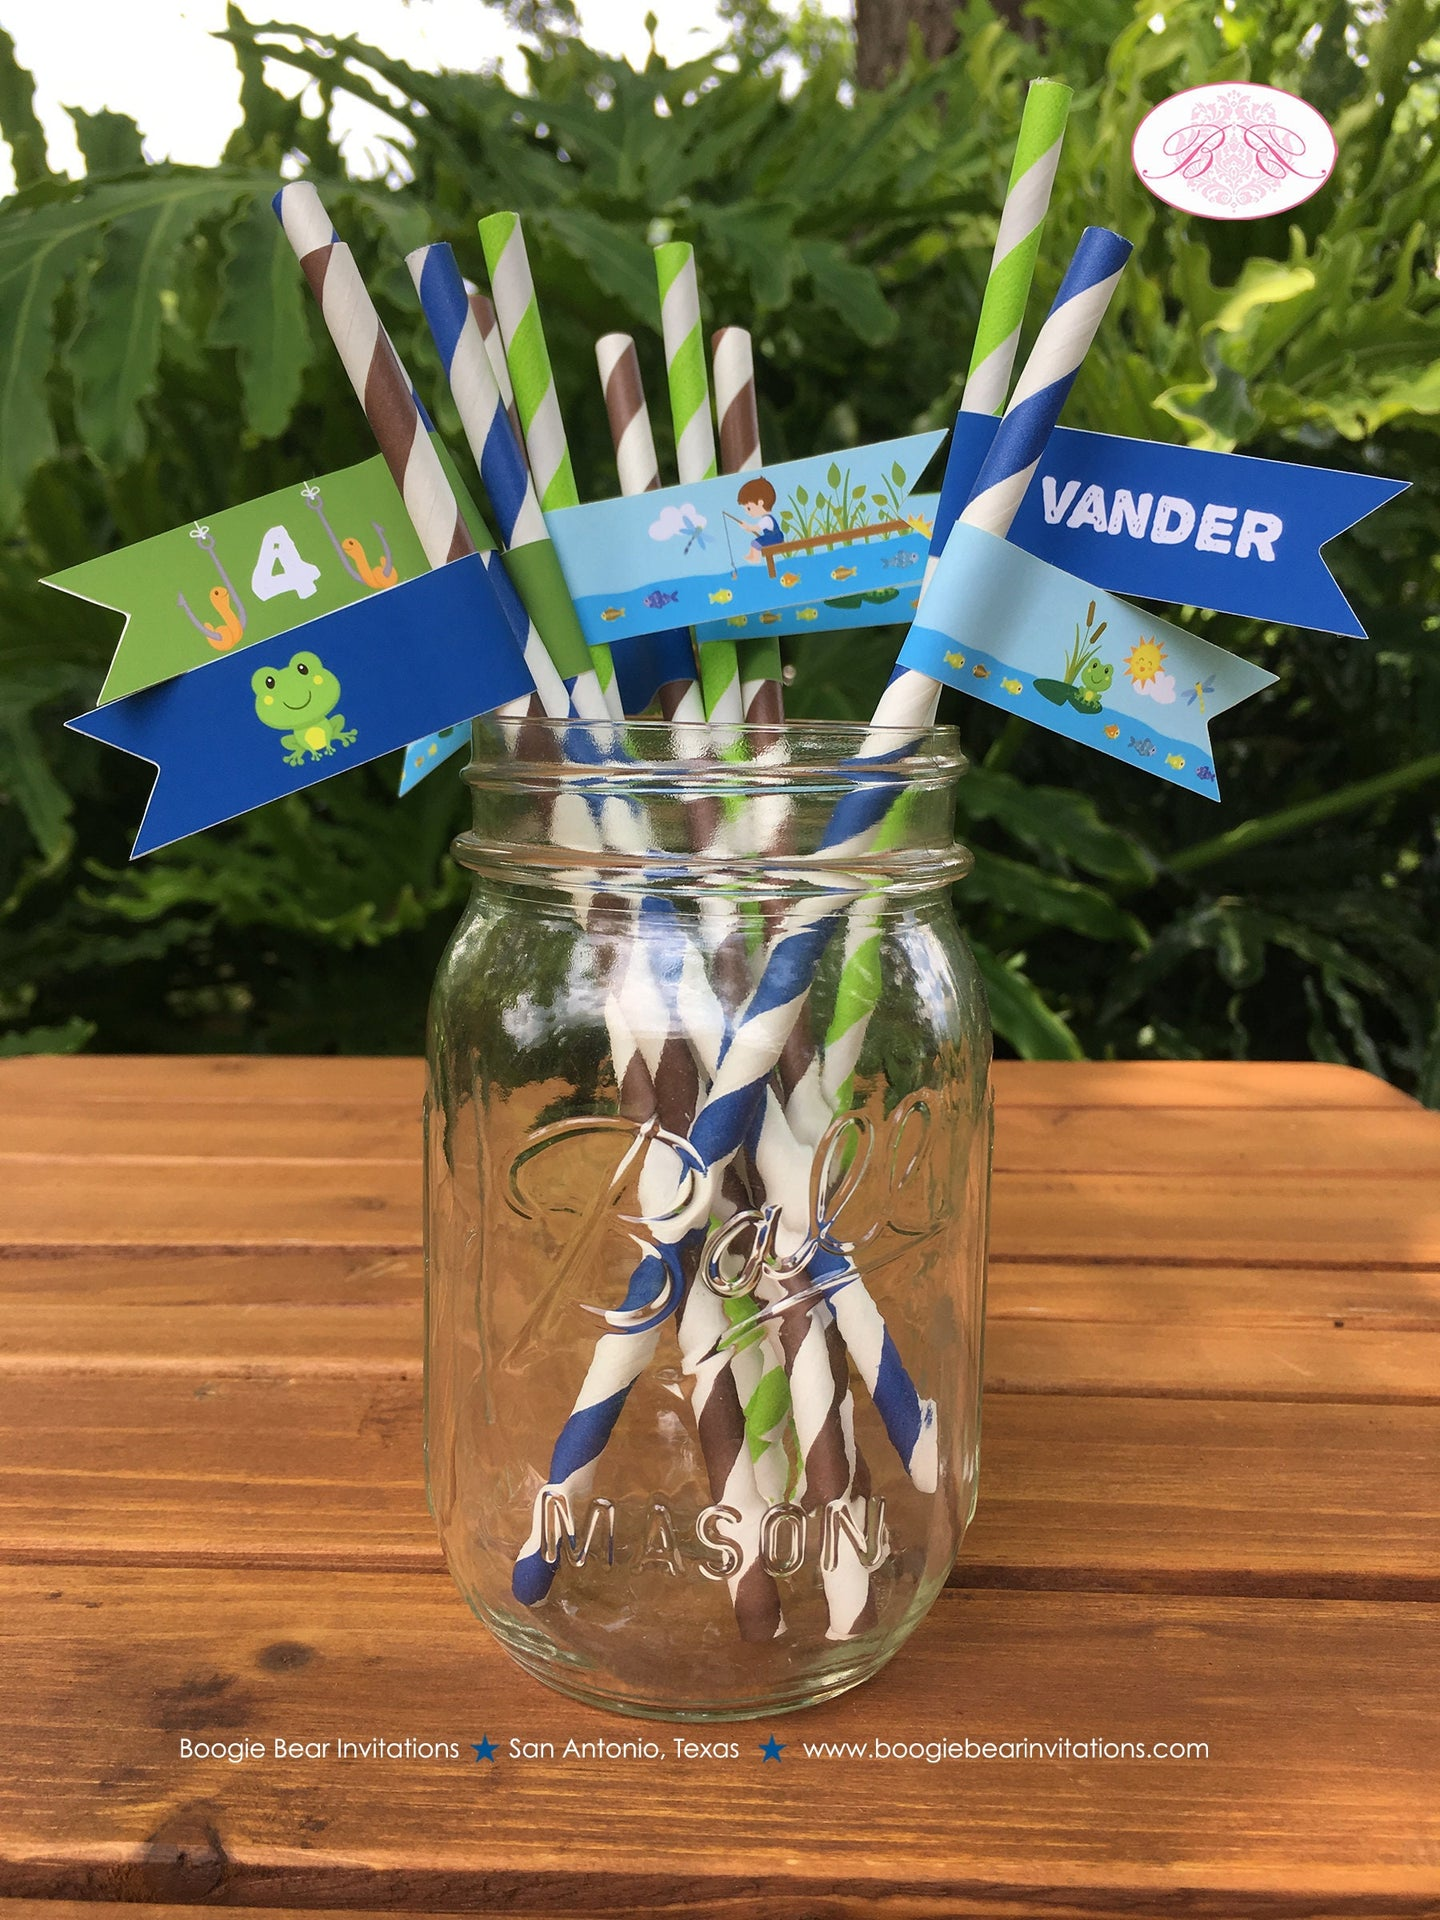 Fishing Boy Birthday Party Paper Pennant Straws Beverage Fish Blue Green Brown 1st 2nd 3rd 4th 5th 6th Boogie Bear Invitations Vander Theme